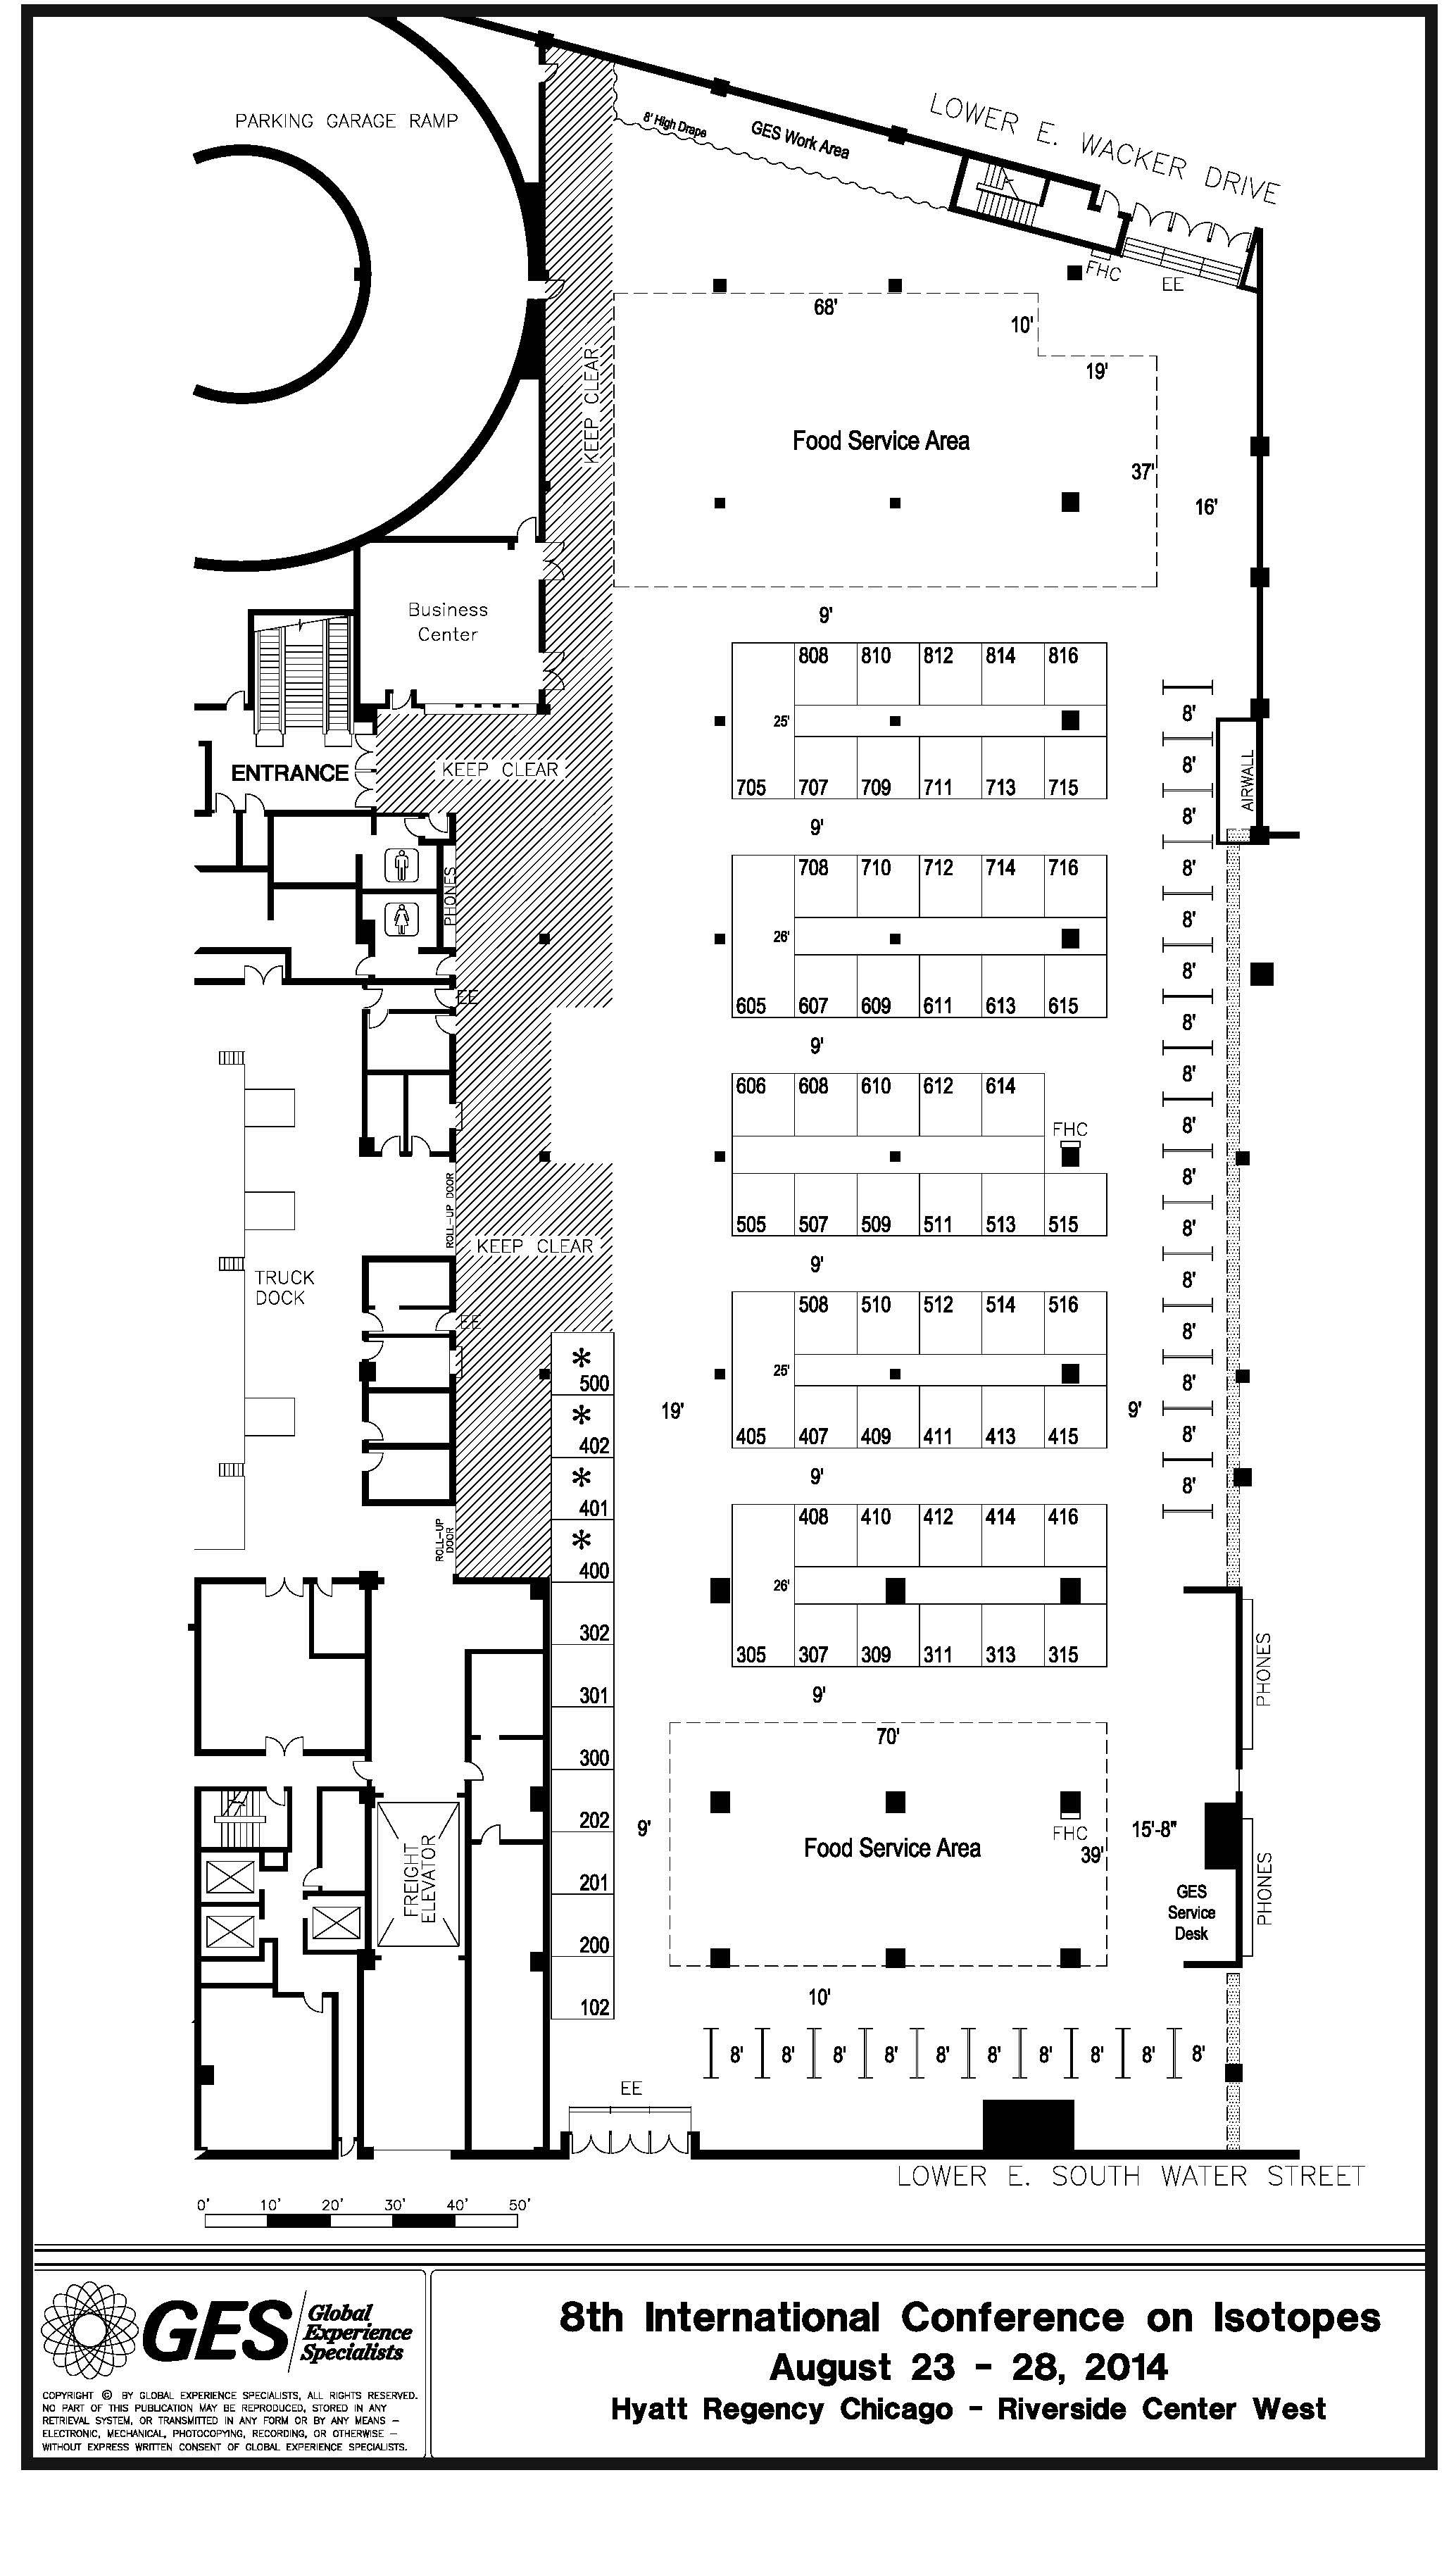 8ICI Exhibitor Floorplan for Hyatt Regency-Chicago (rev. Feb 17)